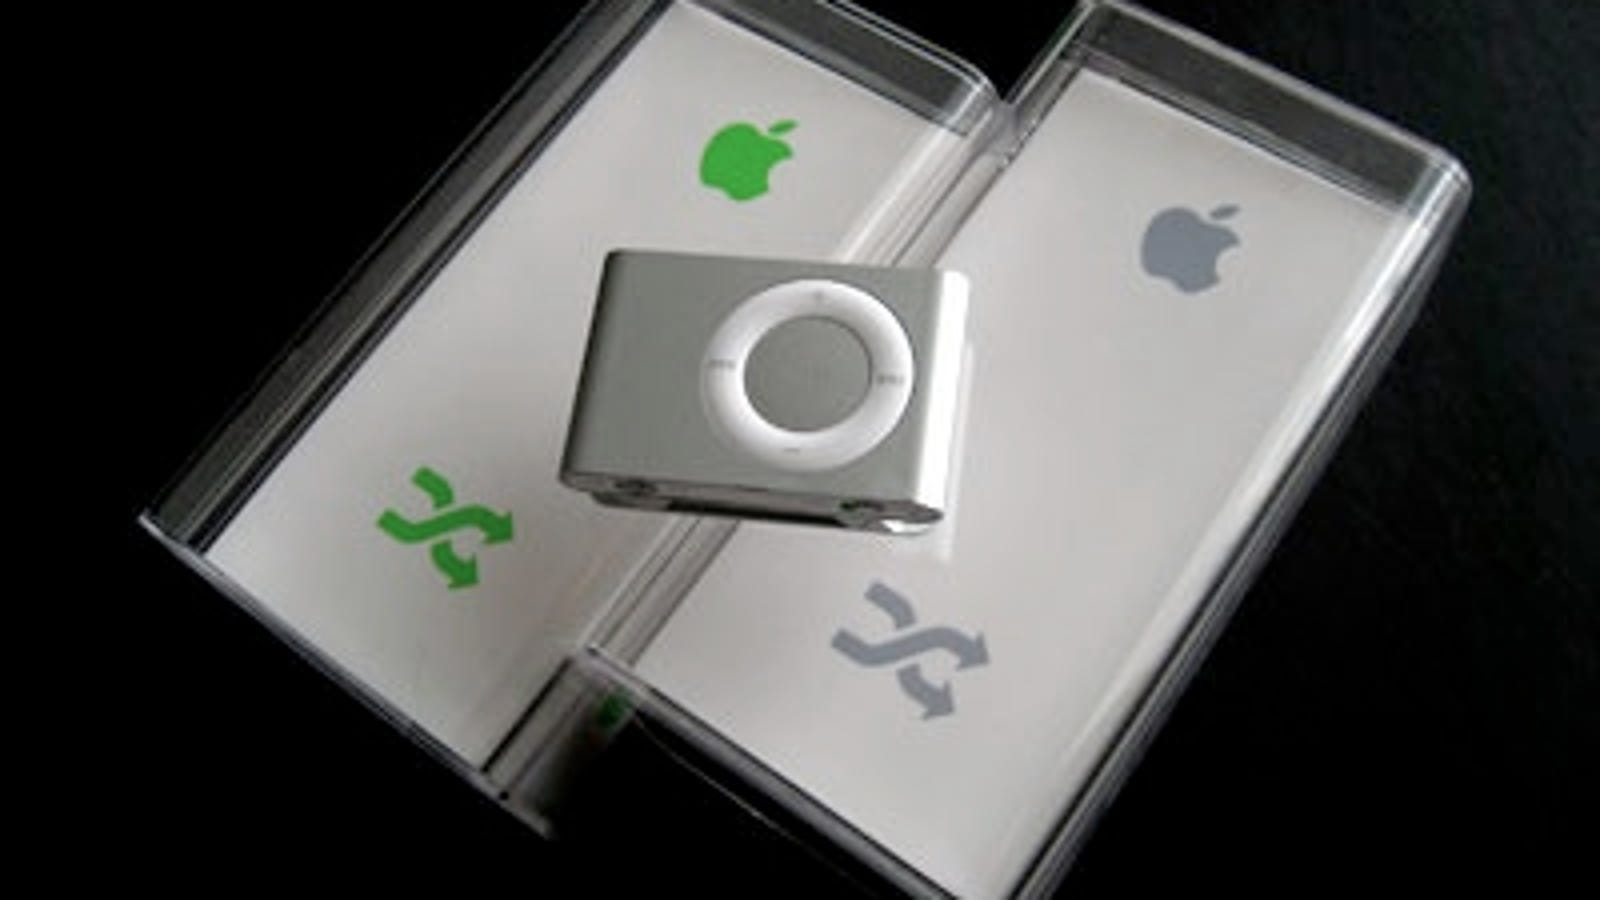 earbuds zol - Get the Latest iPod shuffle Earbuds: Telling the Old Box vs. the New